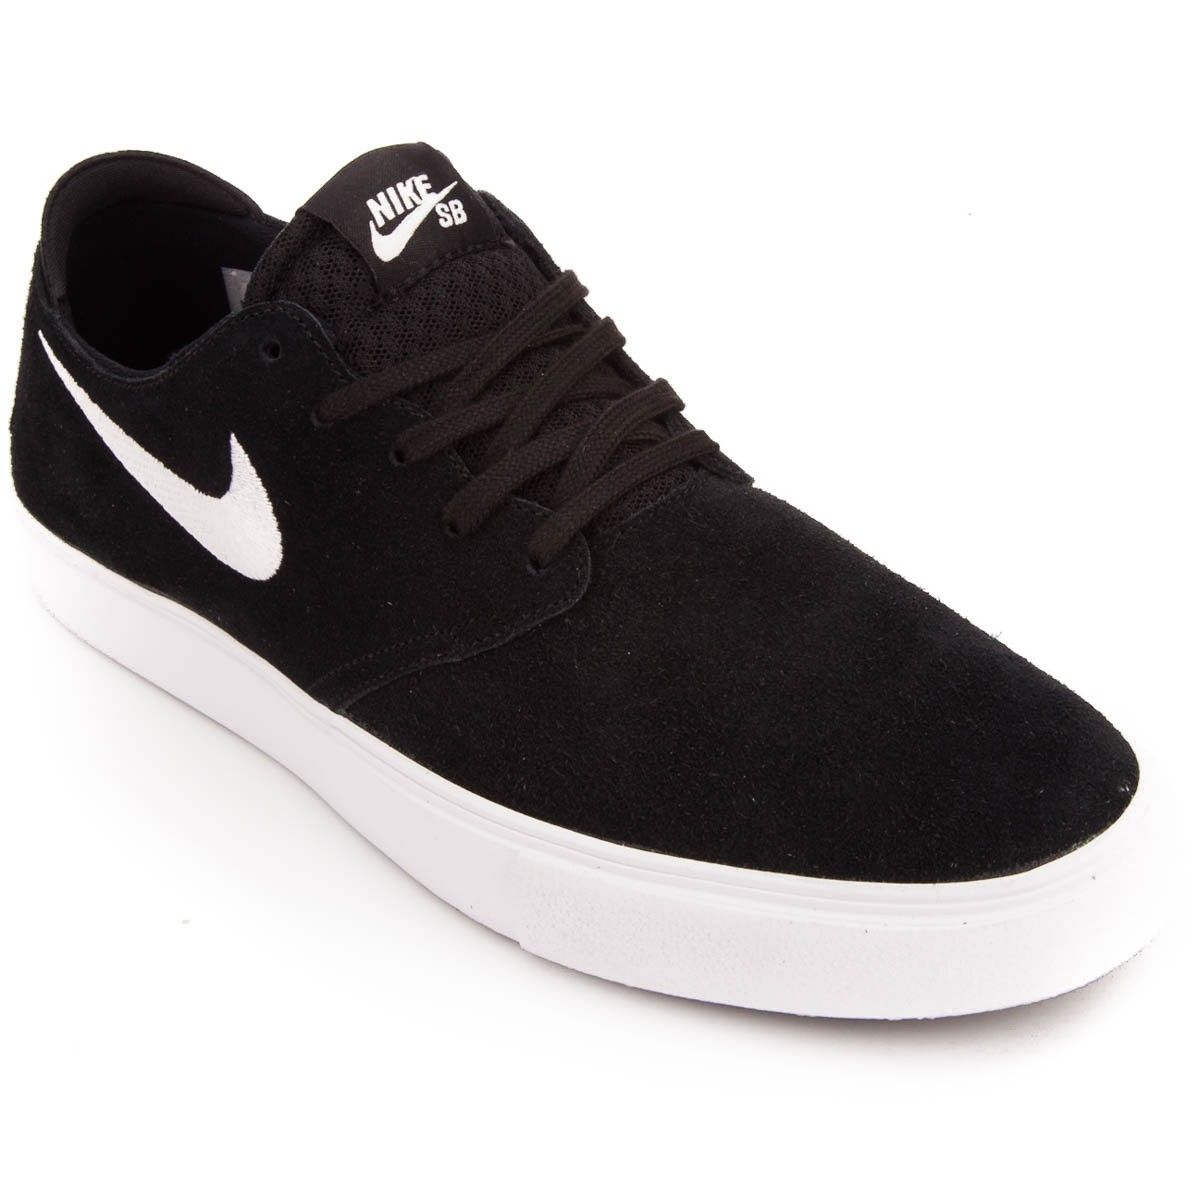 73e2d81dd cheap nike mens zoom oneshot sb skate shoe lyst 2b18c f7eeb  promo code for  los angeles 7a25d 9a1af nike zoom one shot shoes blackwhite 6.0 3b5a9 c22f6